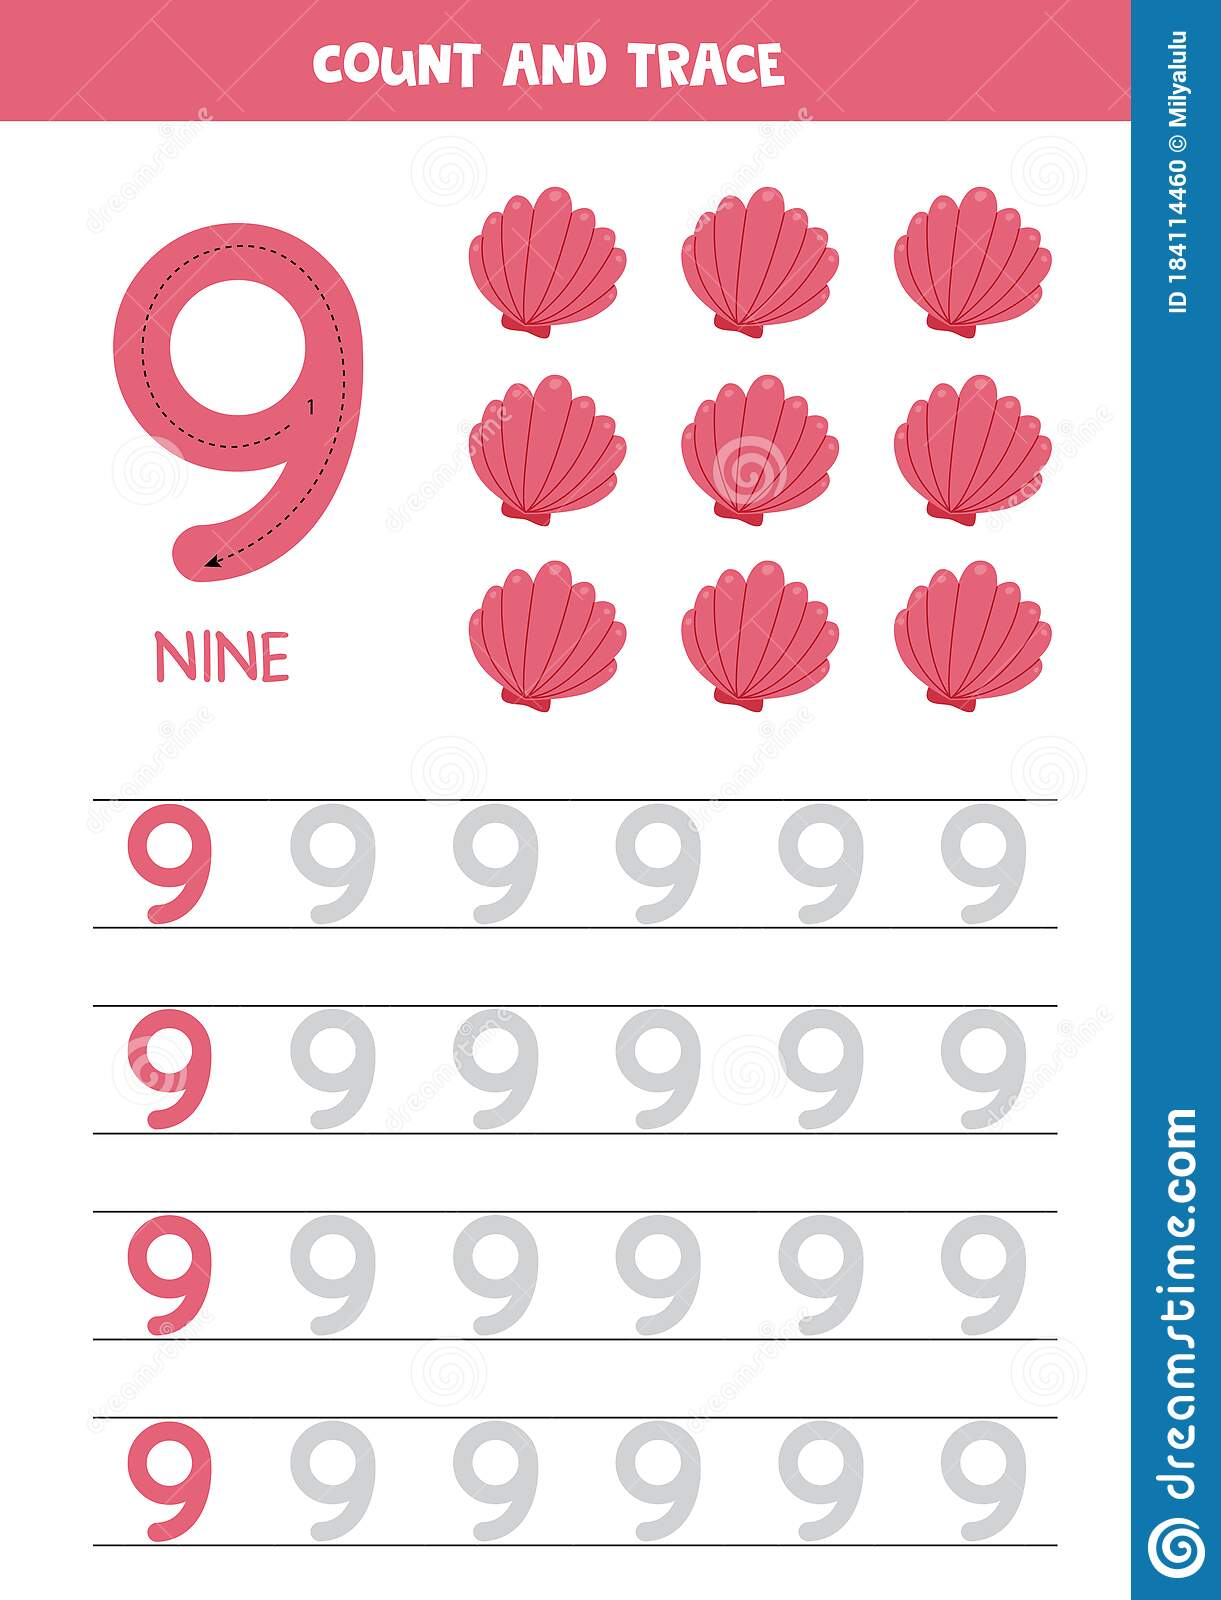 Worksheet For Learning Numbers With Cartoon Seashells